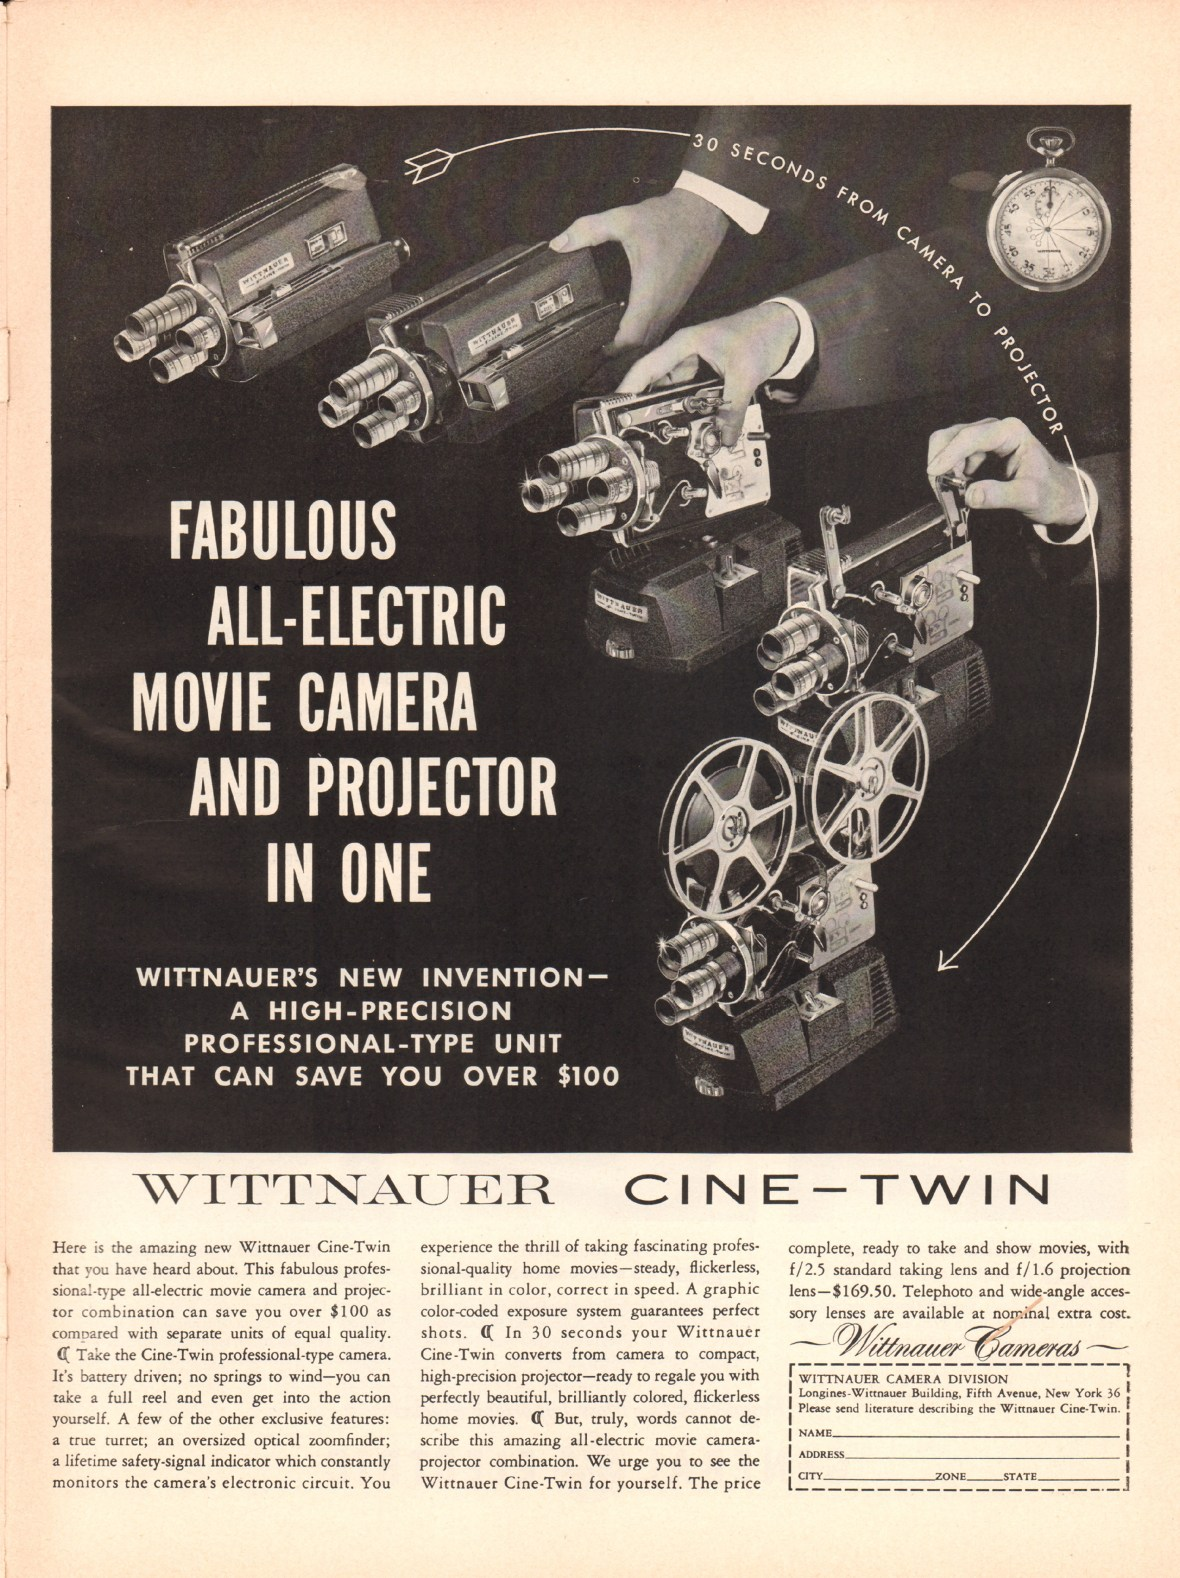 Wittnauer Cameras - published in Life - November 10, 1958